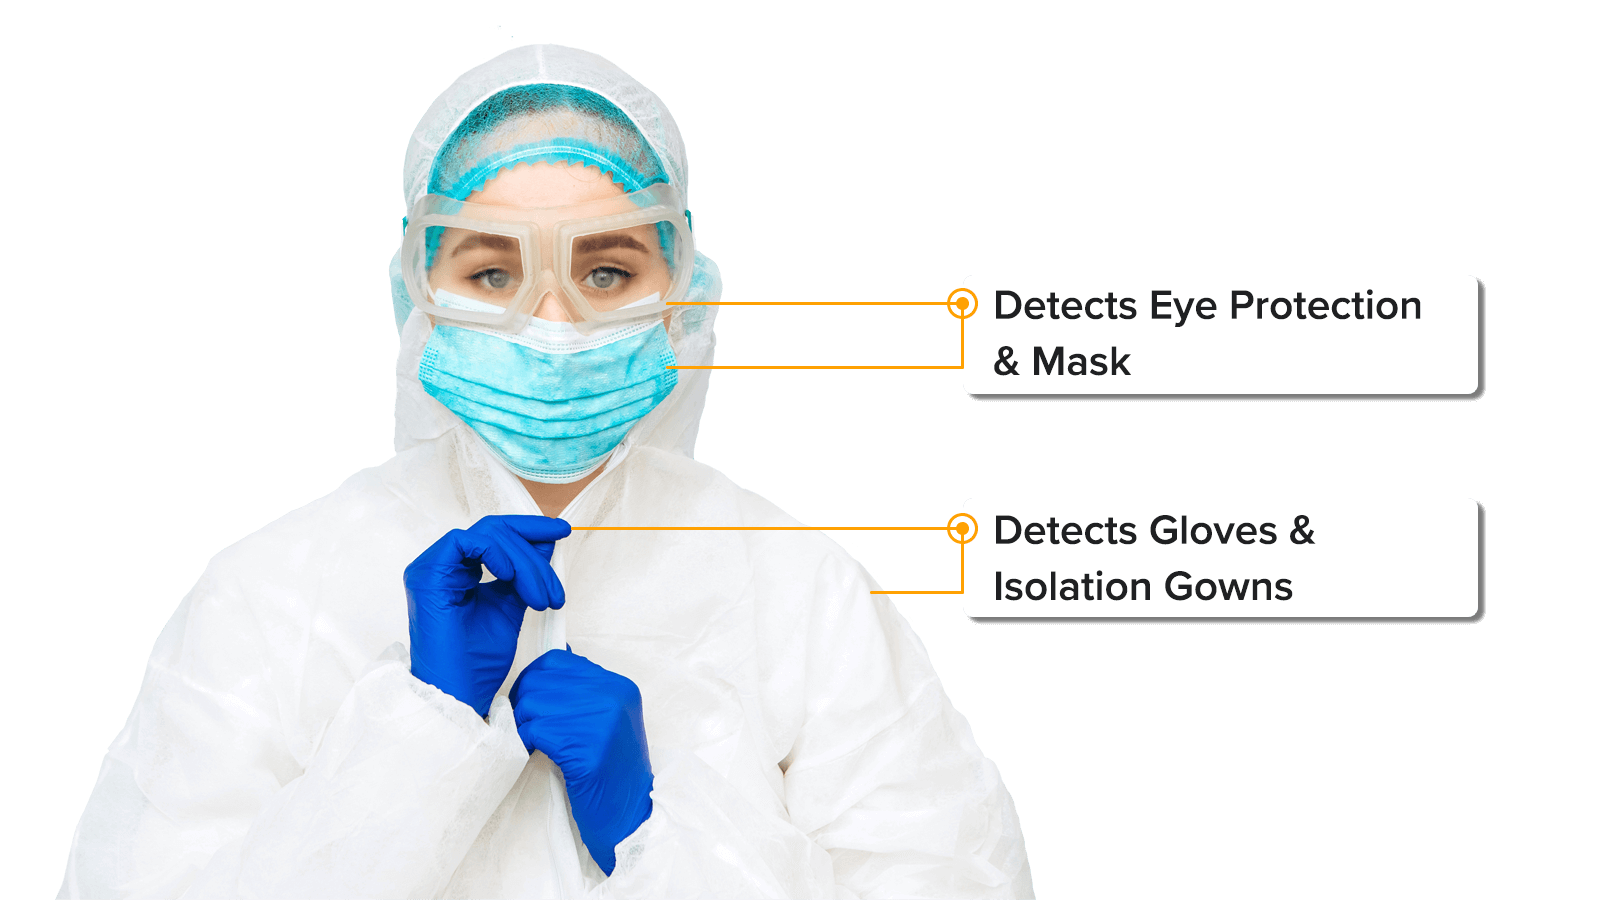 Automated PPE Detection, Detects Eye Protection & Mask, Gloves & Isolation Gowns